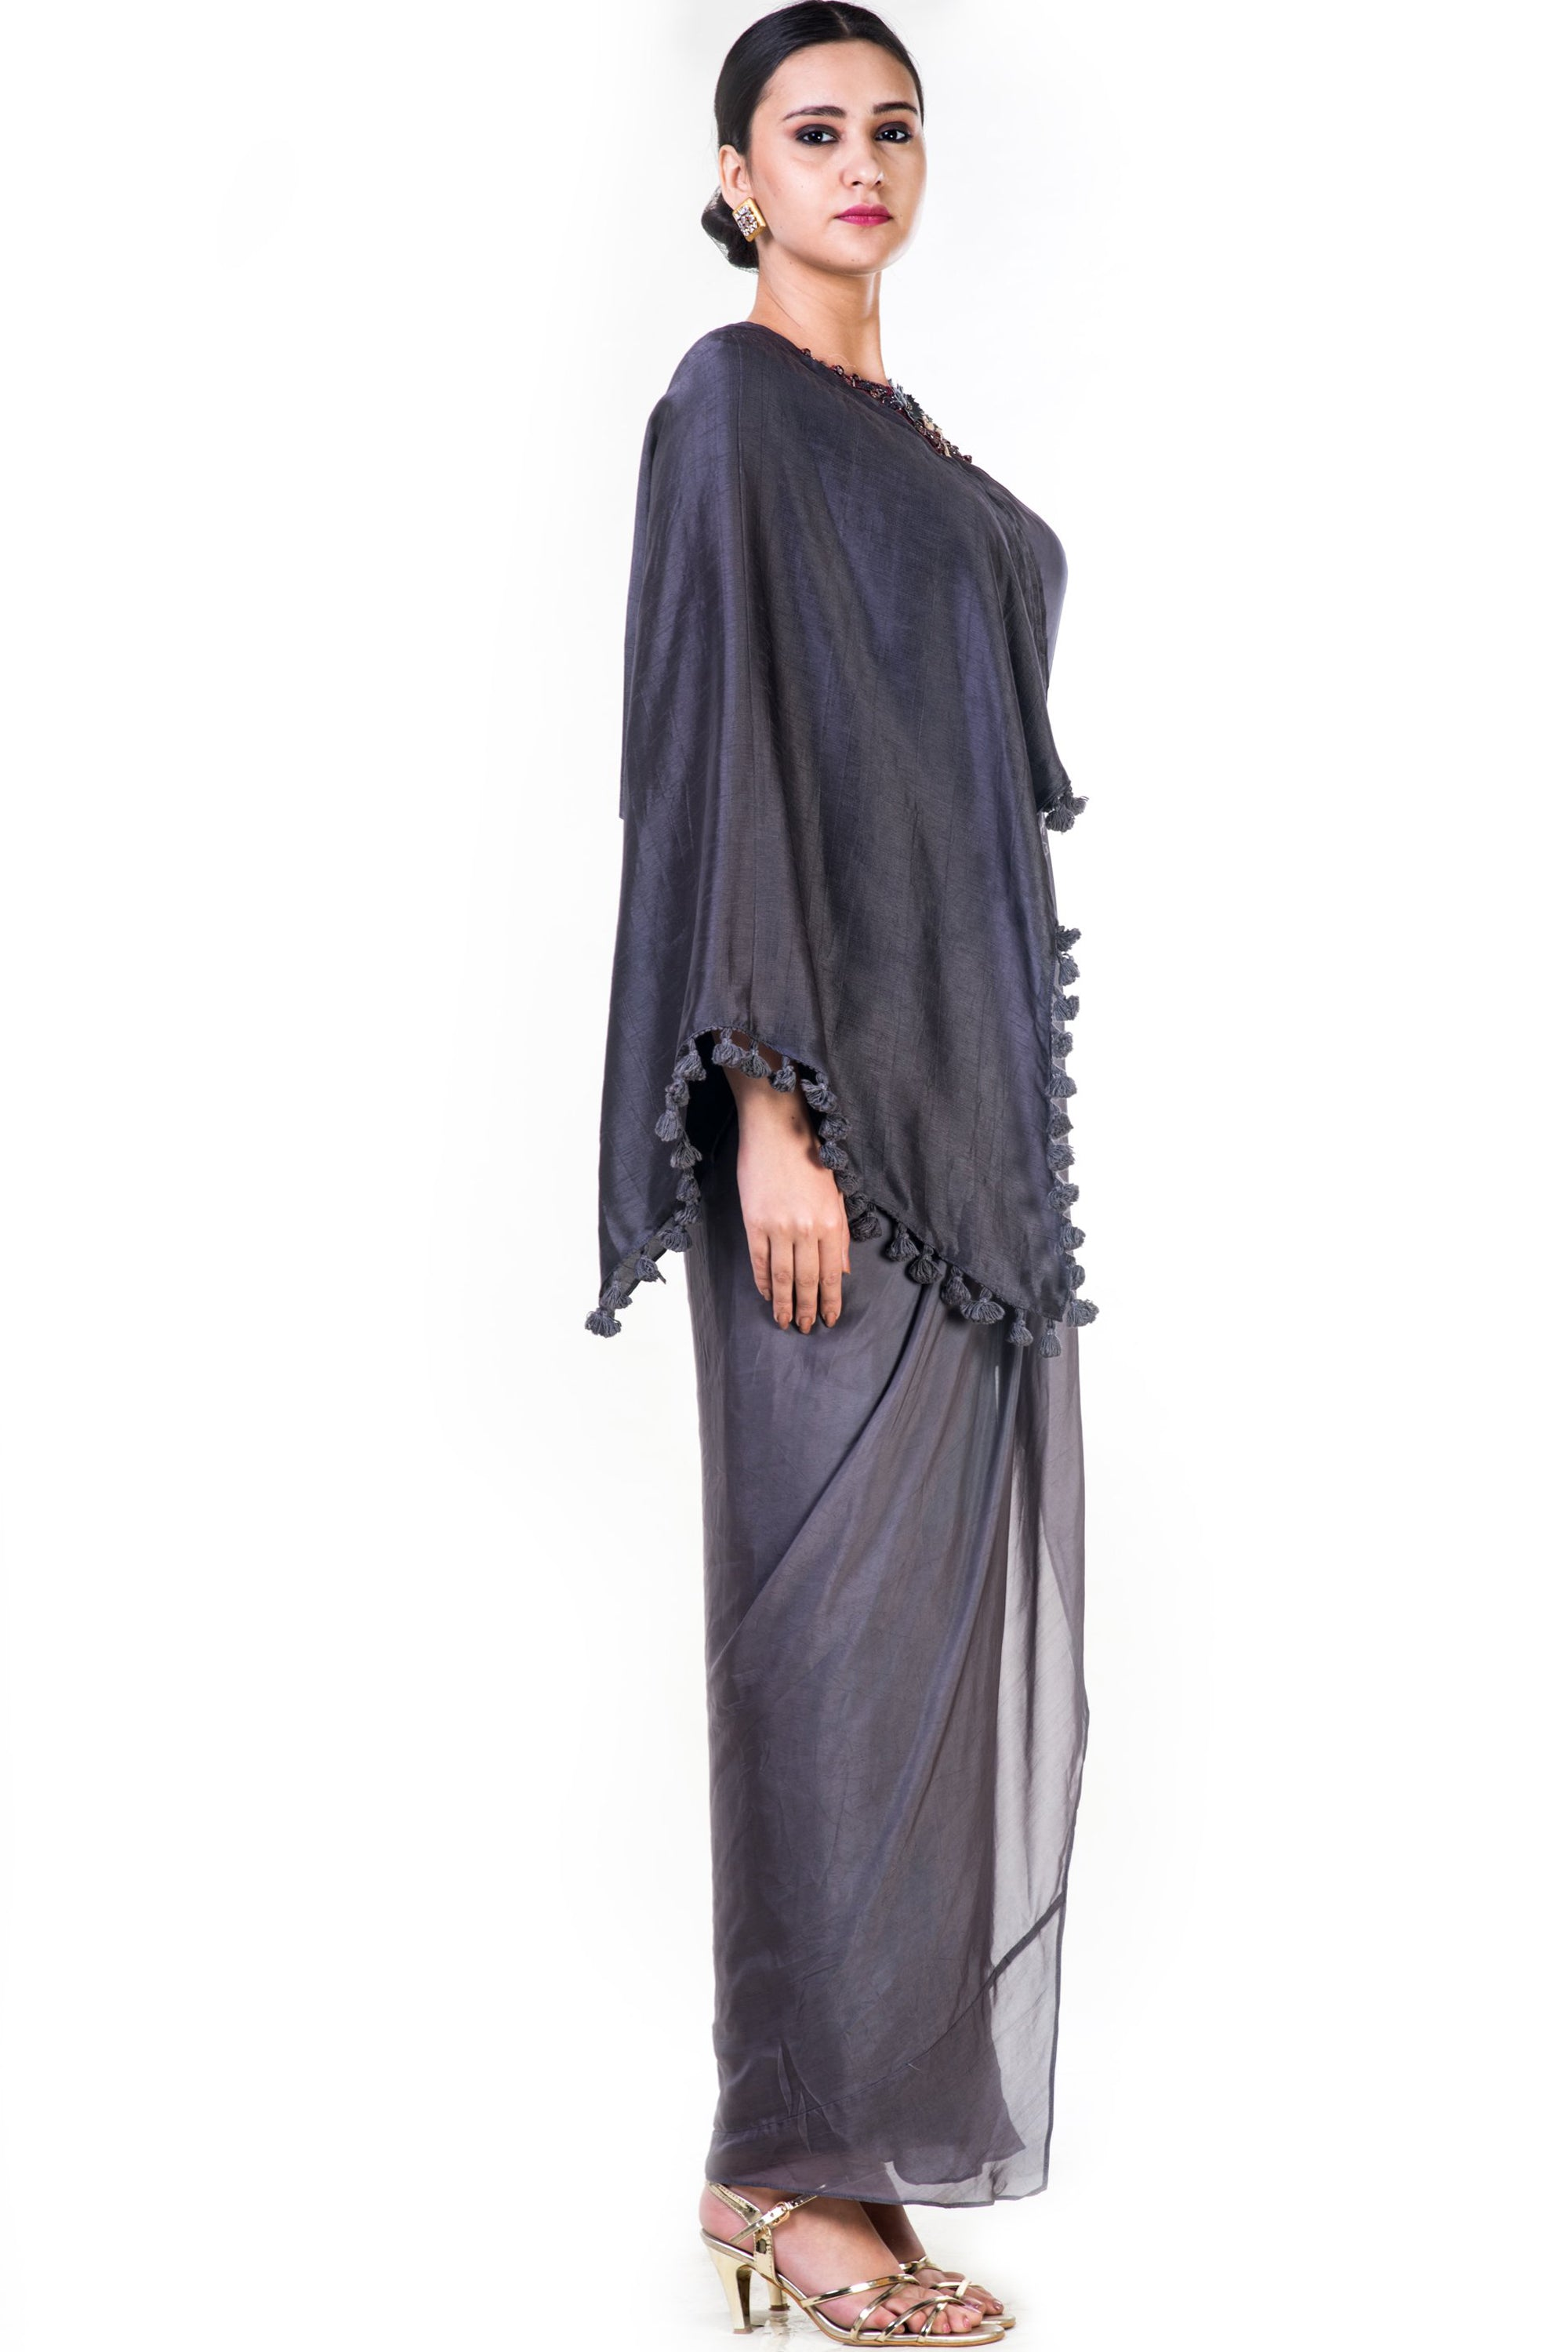 Embroidered Charcoal Grey Asymmetrical Cape Draped Gown Side